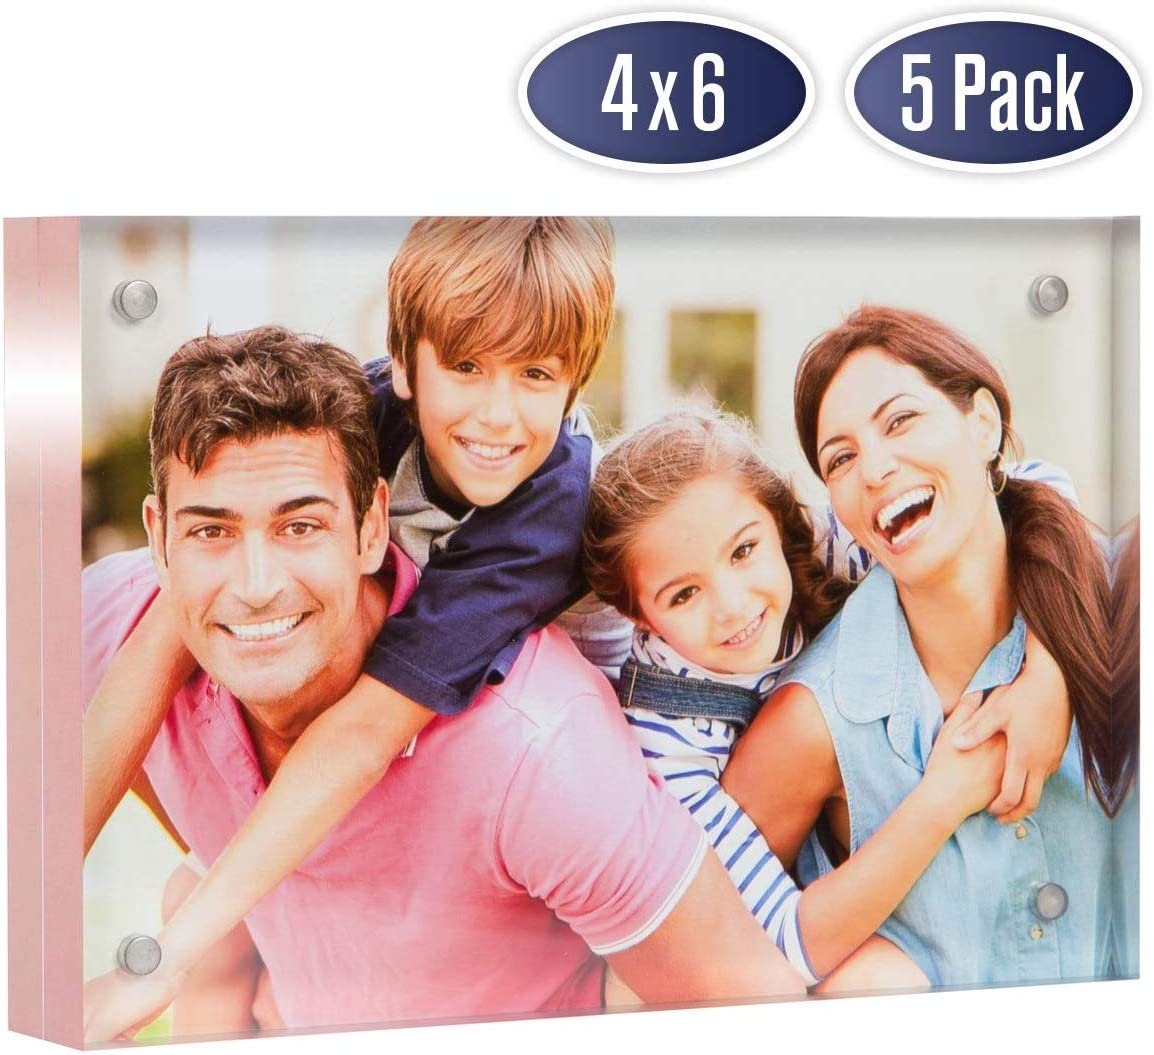 Acrylic Picture Frame 4x6 with Rose Gold Edges - Double Sided Magnetic Photo Frame, 24 mm Thick Clear Picture Frame, 4 x 6 Inches Acrylic Frame, Modern and Self Standing for Desktop Display (5 Pack)